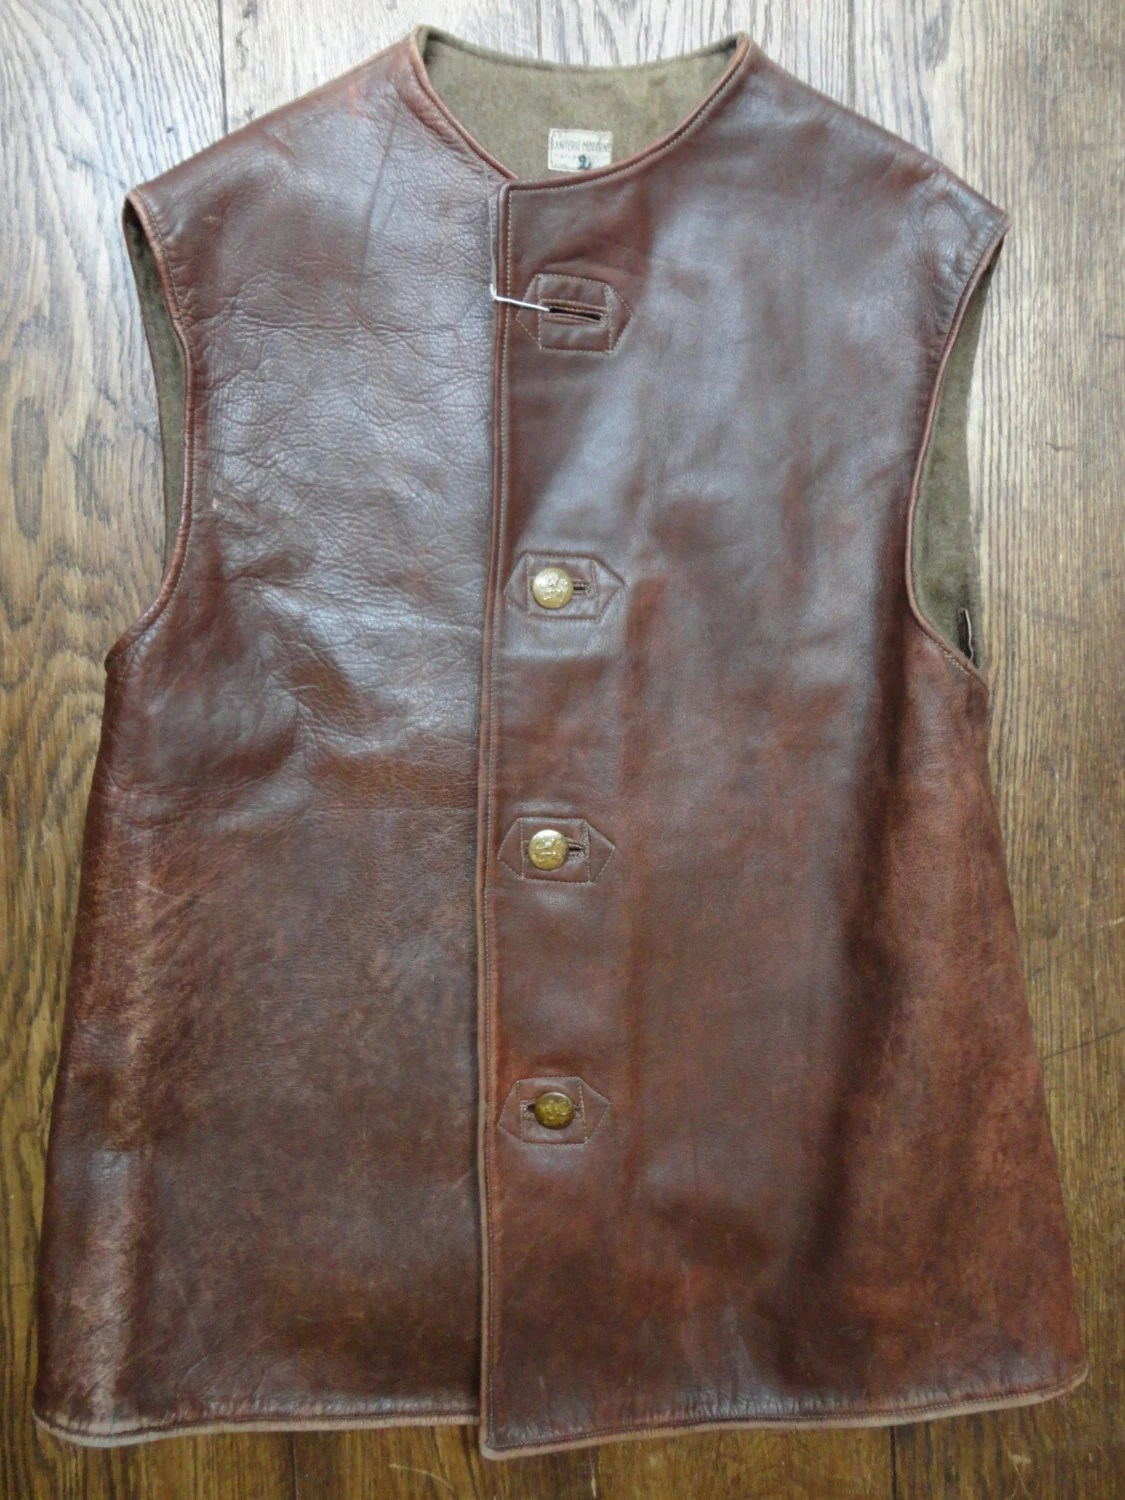 Vintage 1950s brown horsehide leather jerkin 44 chest